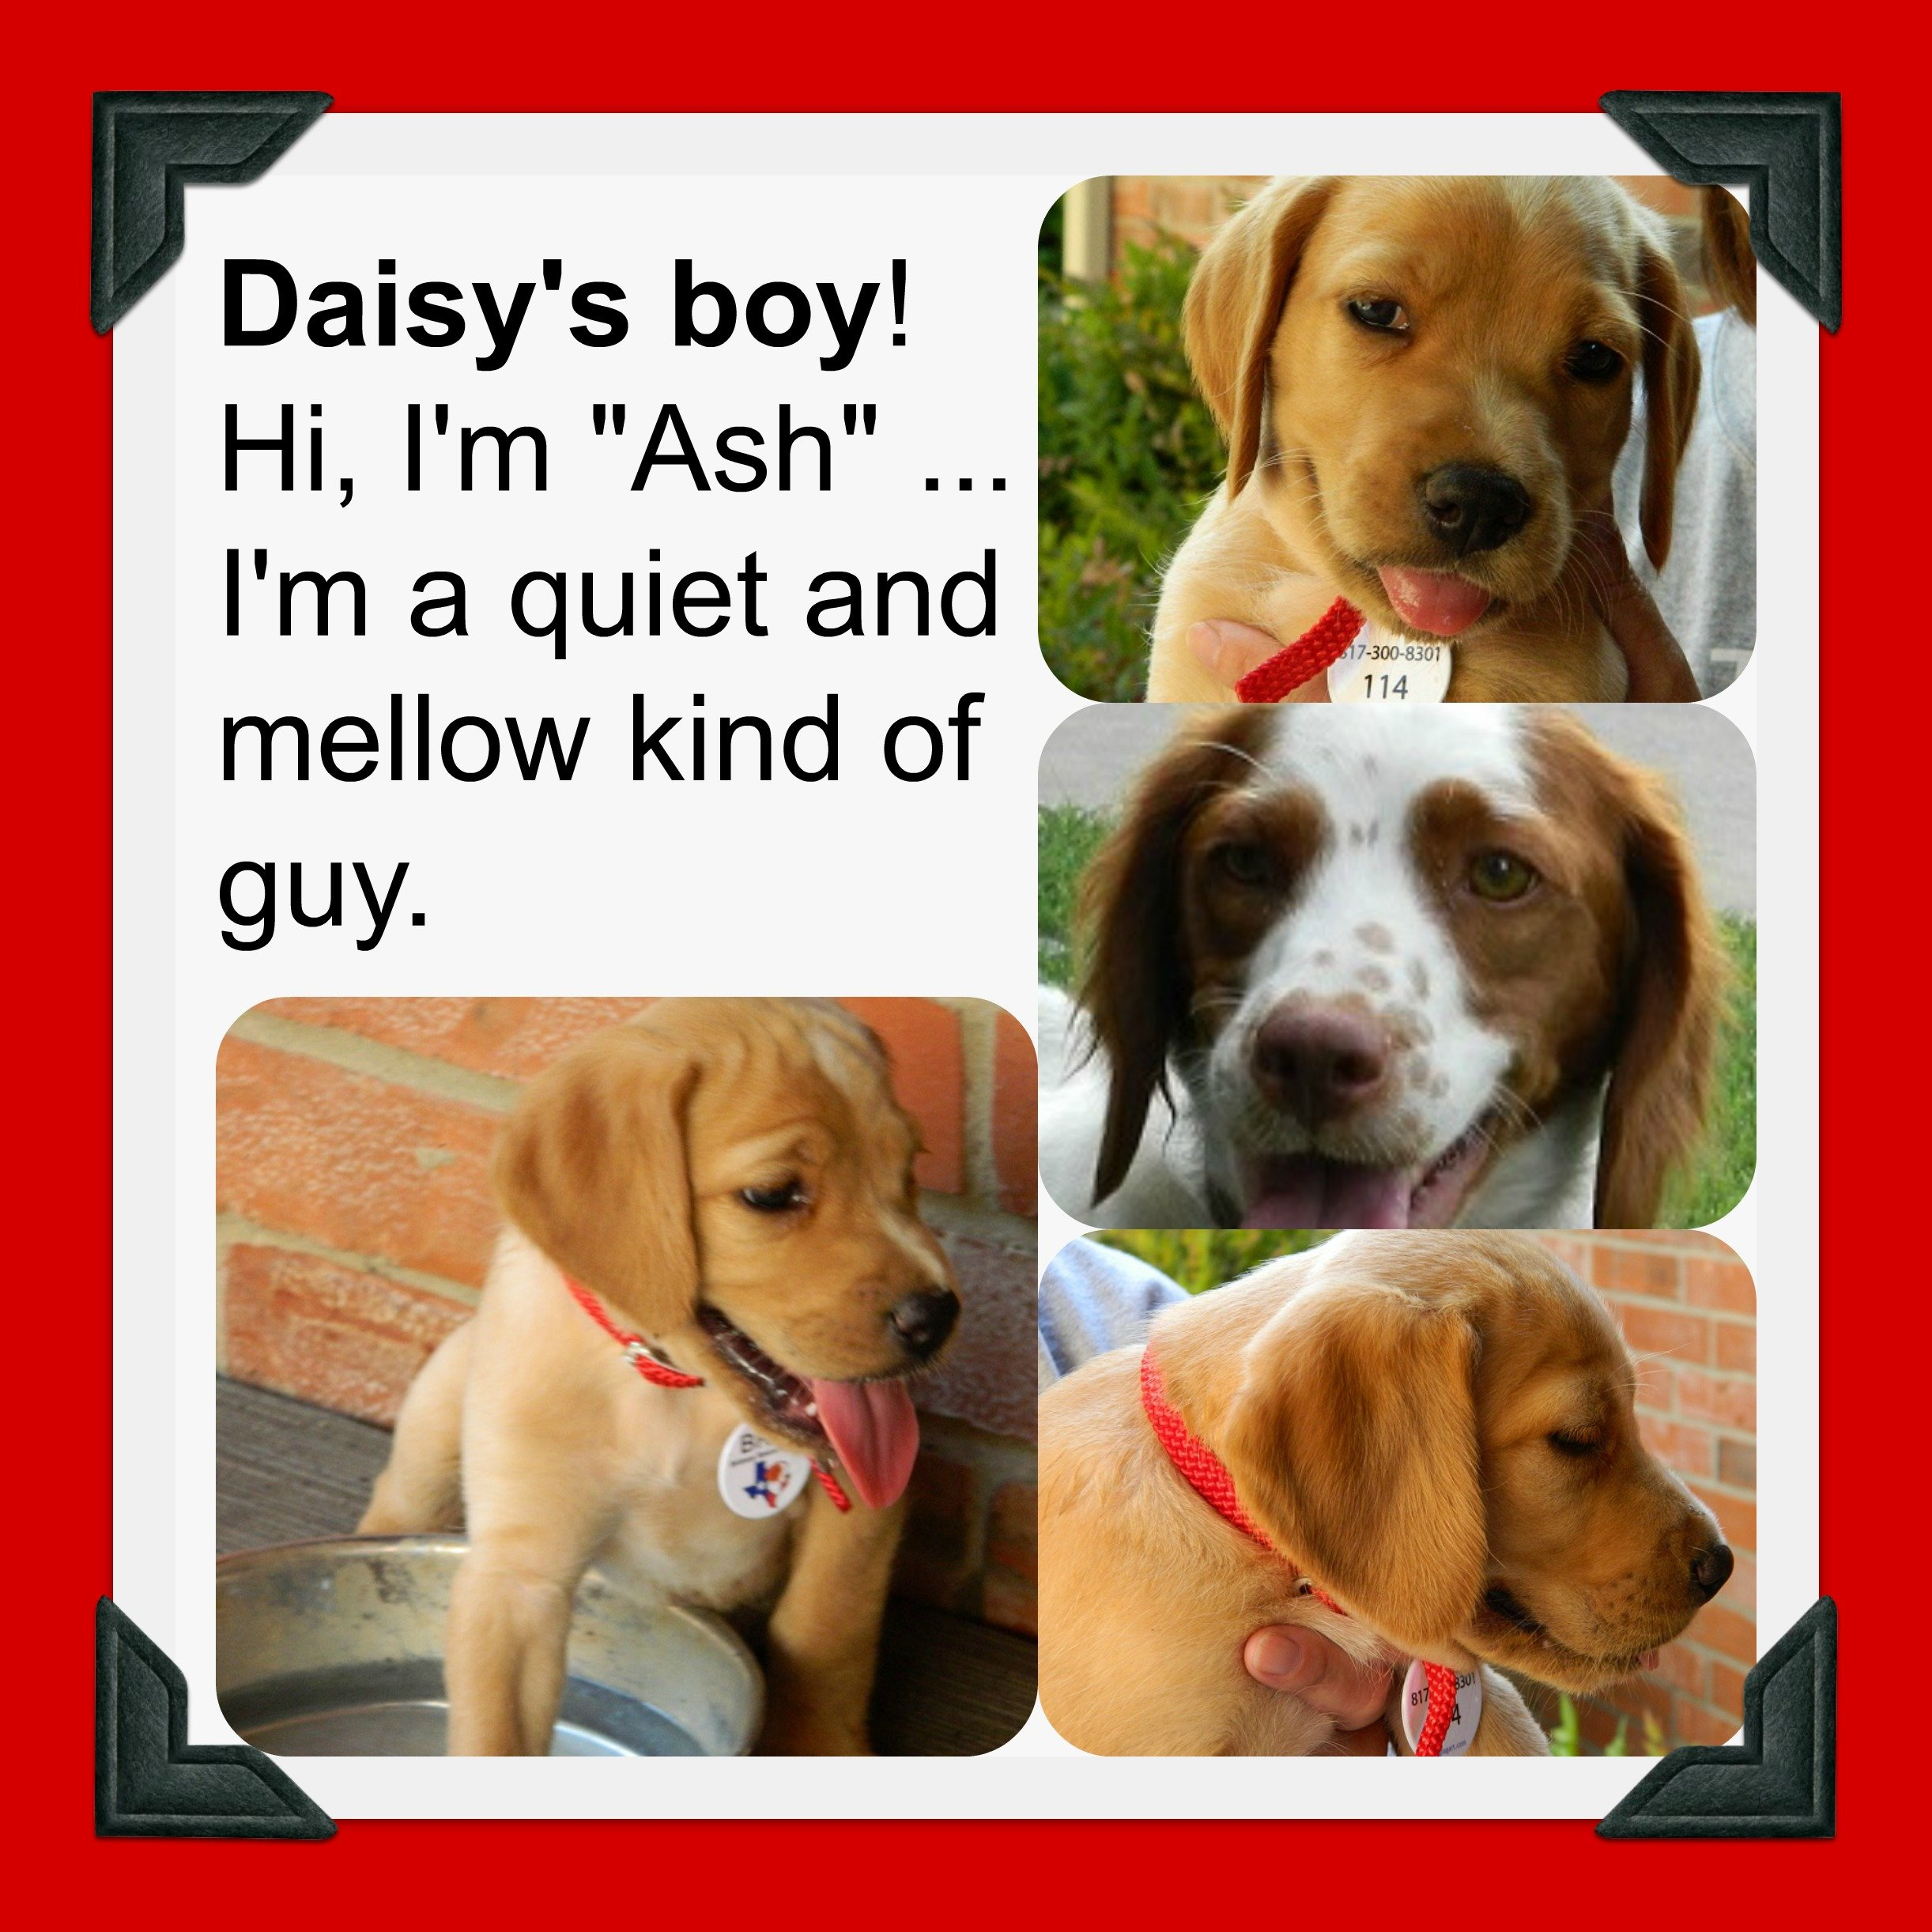 DAISY '14 - website puppy - Ash  7-13-14